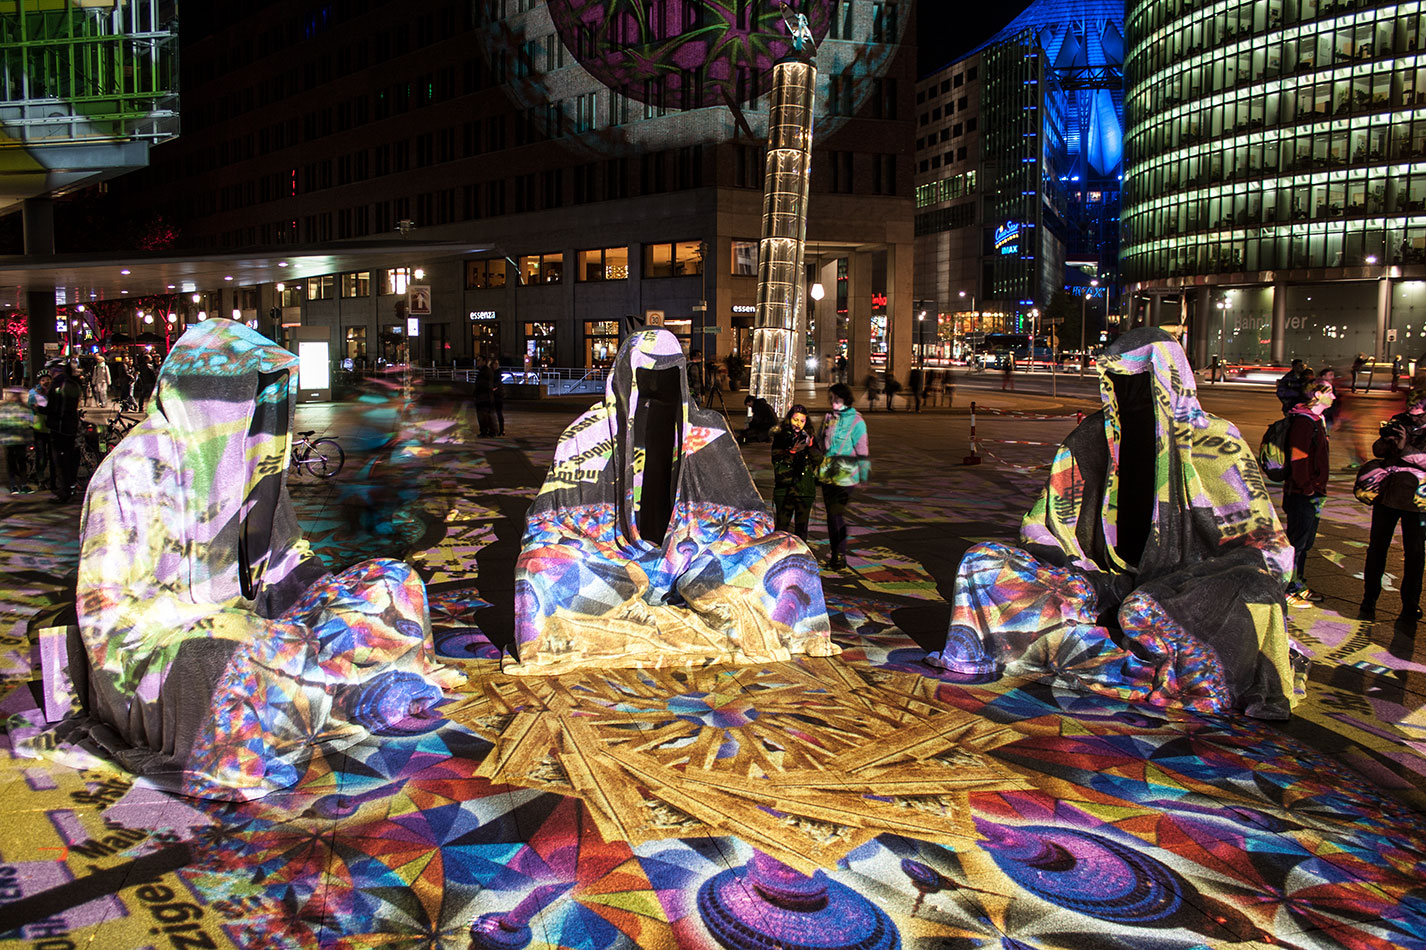 festival-of-lights-berlin-potzdamer-platz-light-art-show-exhibition-lumina-guardians-of-time-manfred-kili-kielnhofer-contemporary-arts-design-large-scale-monumental-public-sculpture-3665